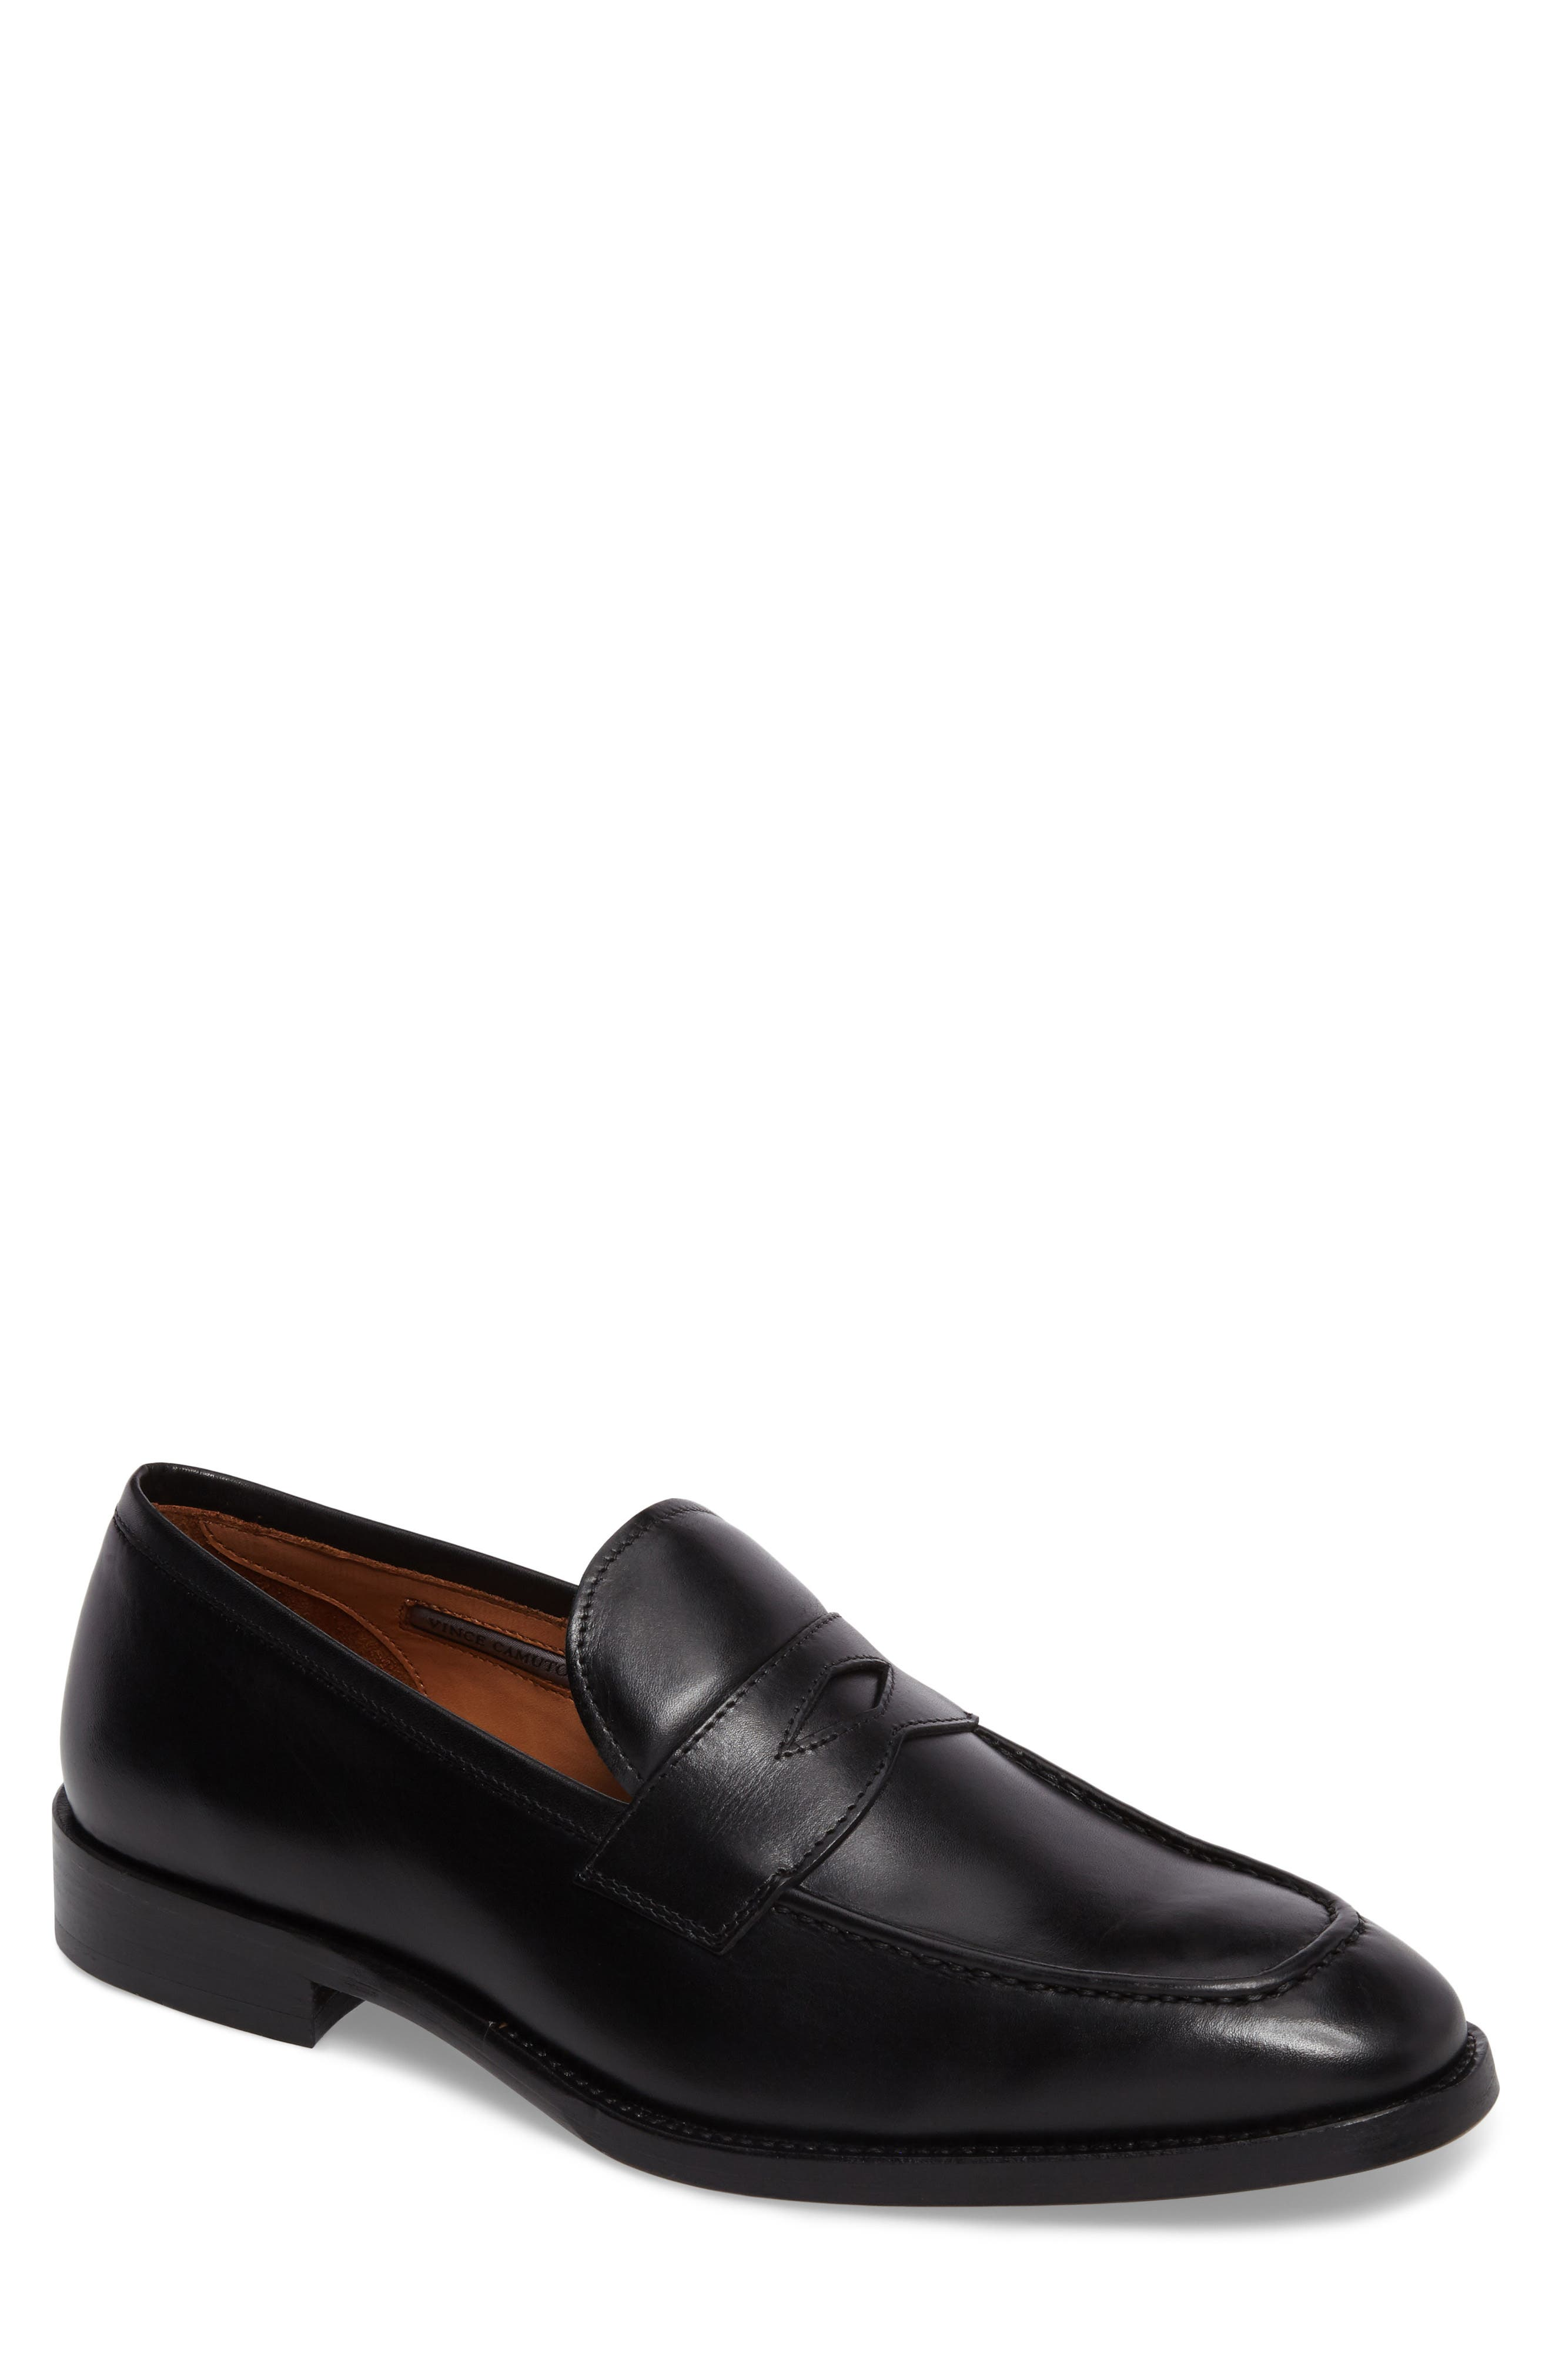 Hoth Penny Loafer,                         Main,                         color, 001